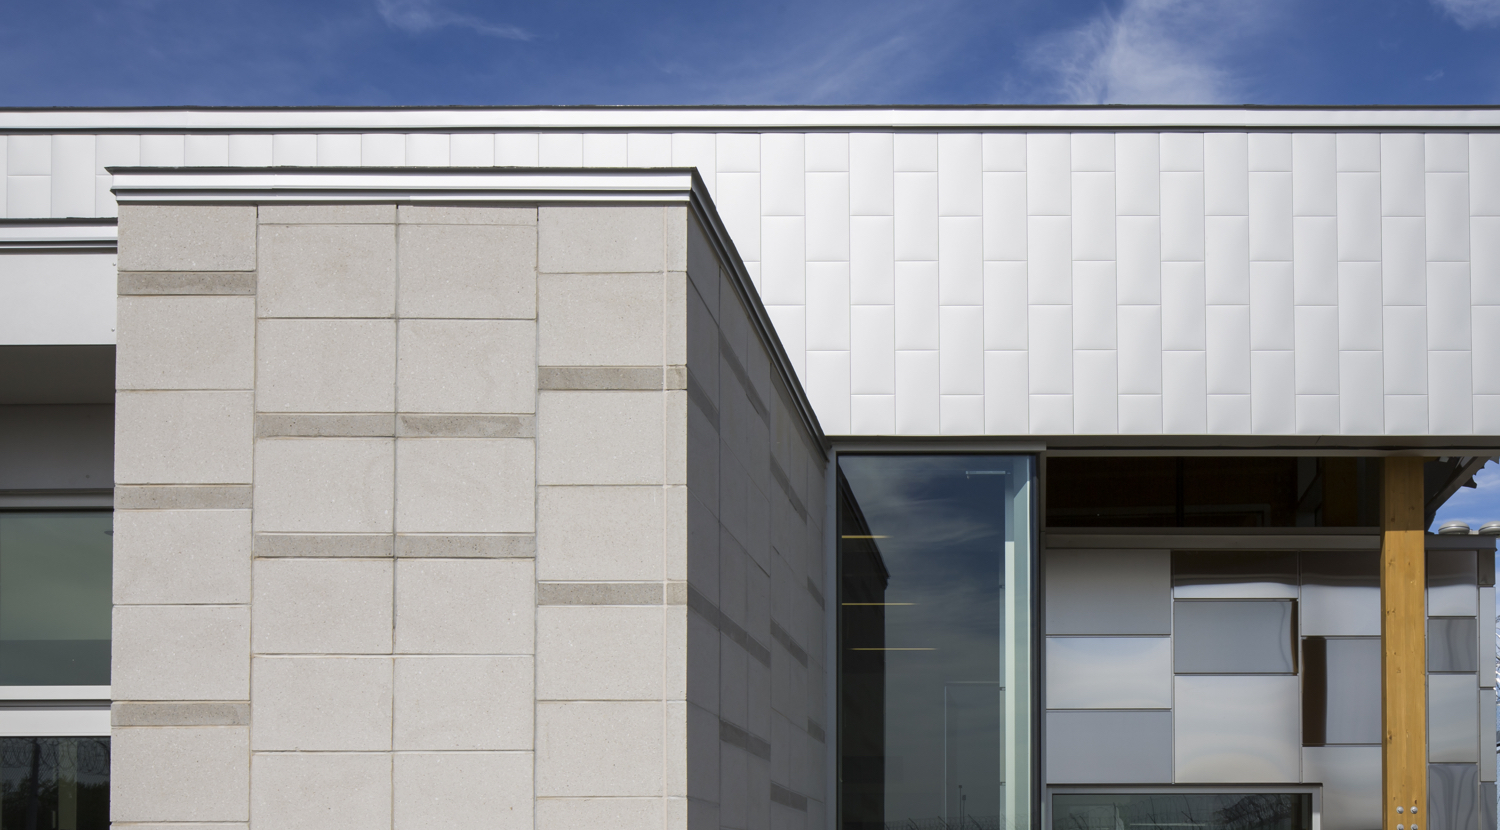 Architectural Siding Products : Architectural metal siding stone concept